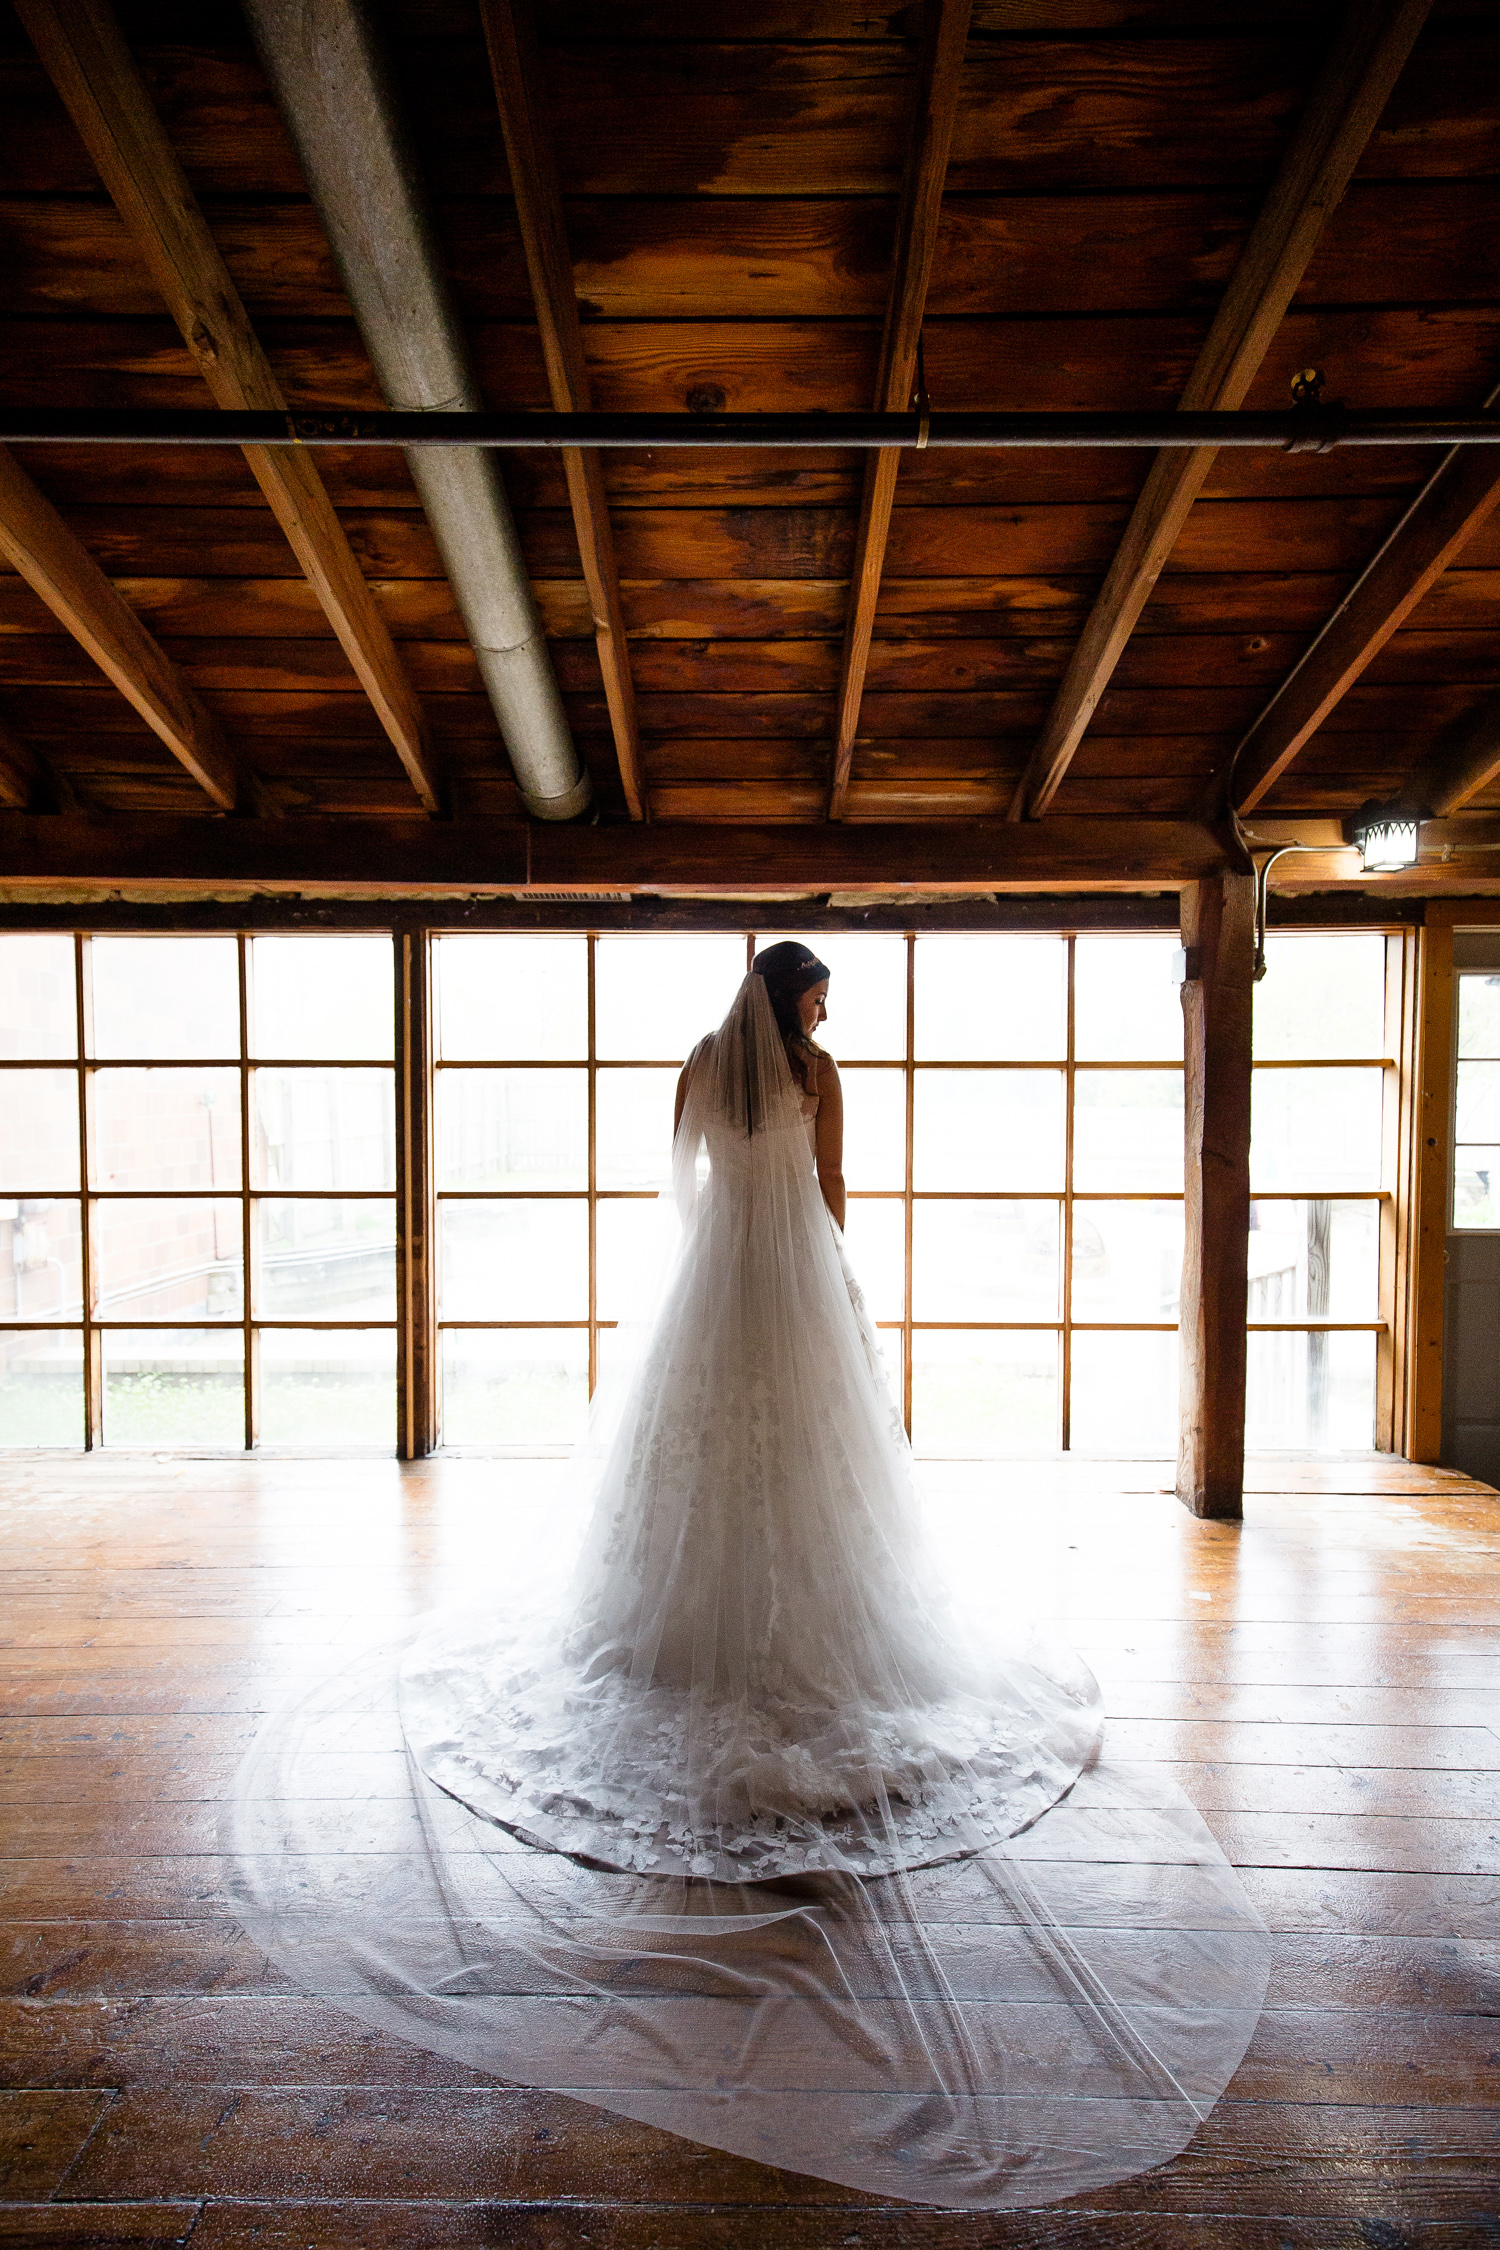 Bride in front of wall of windows